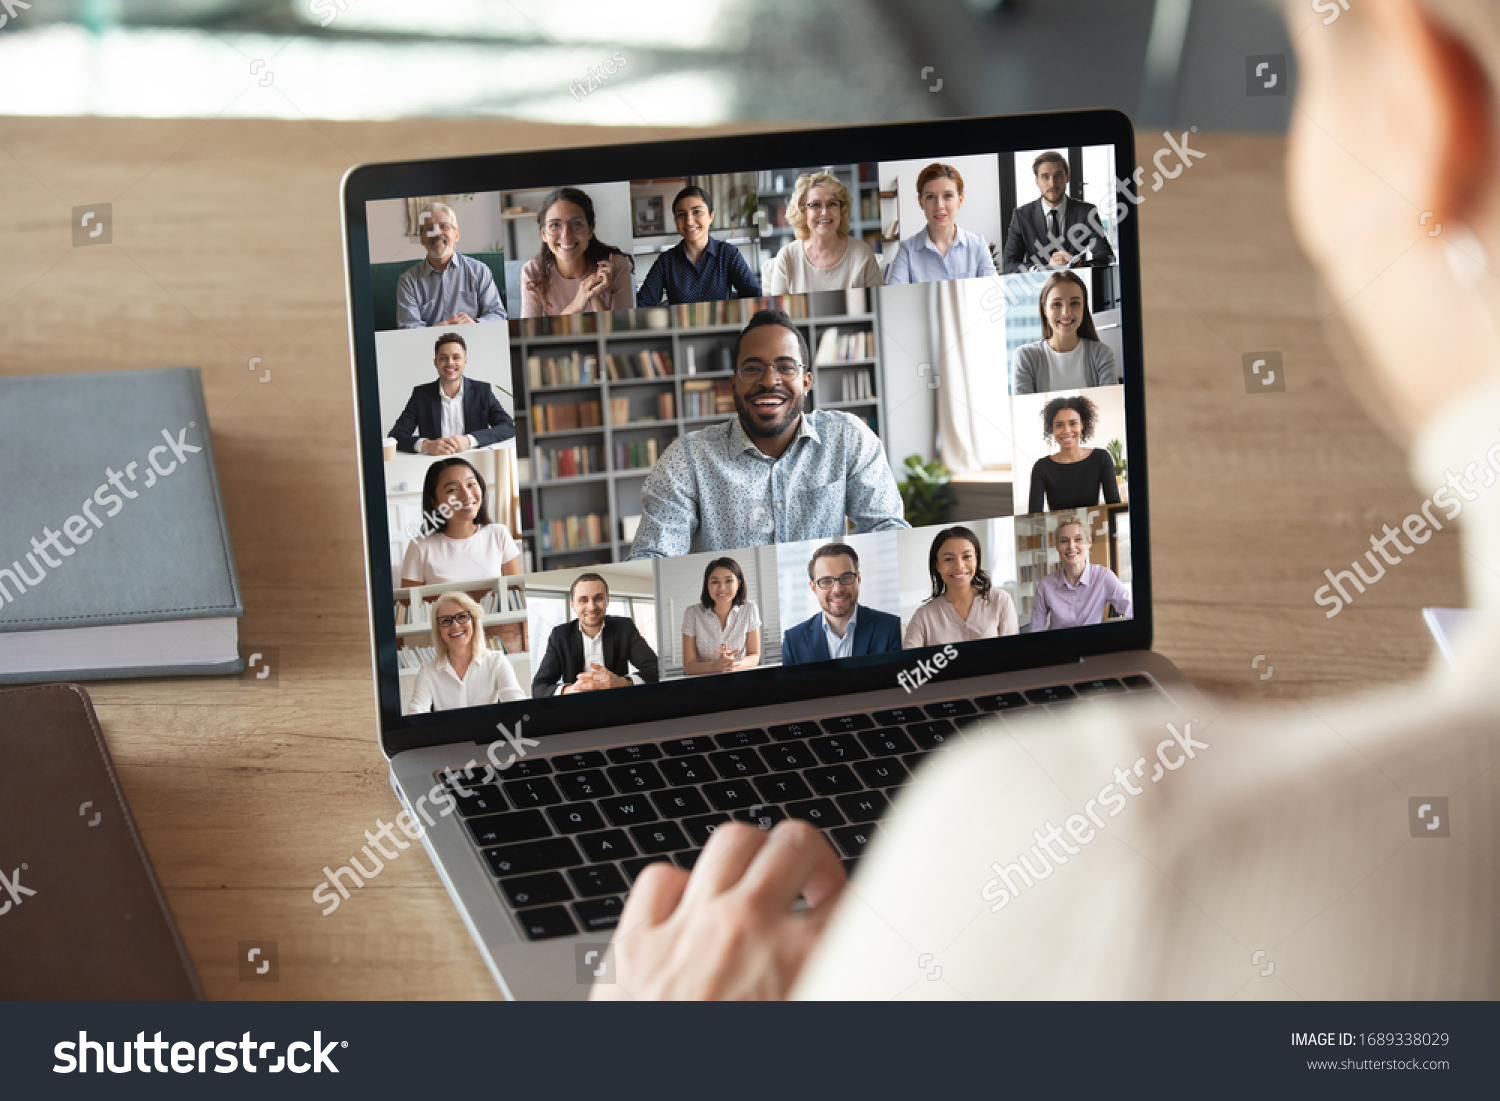 Back view of female employee speak talk on video call with diverse multiracial colleagues on online event briefing, woman worker have Webcam group conference with coworkers on modern laptop at home #1689338029